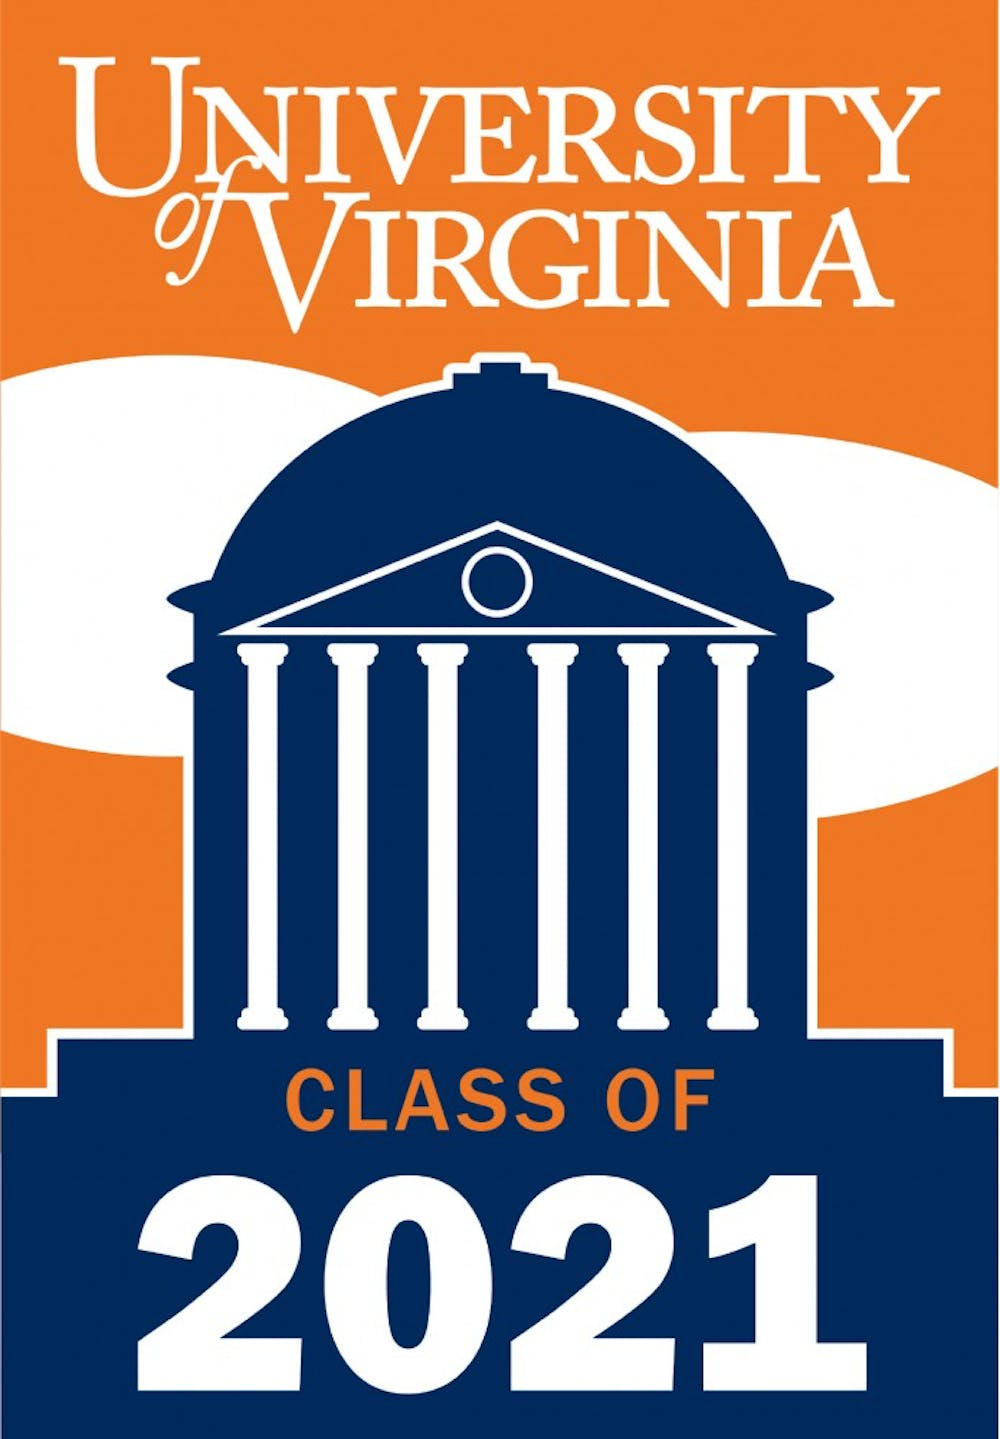 ns-2021logo-courtesyu-va-alumniassociation